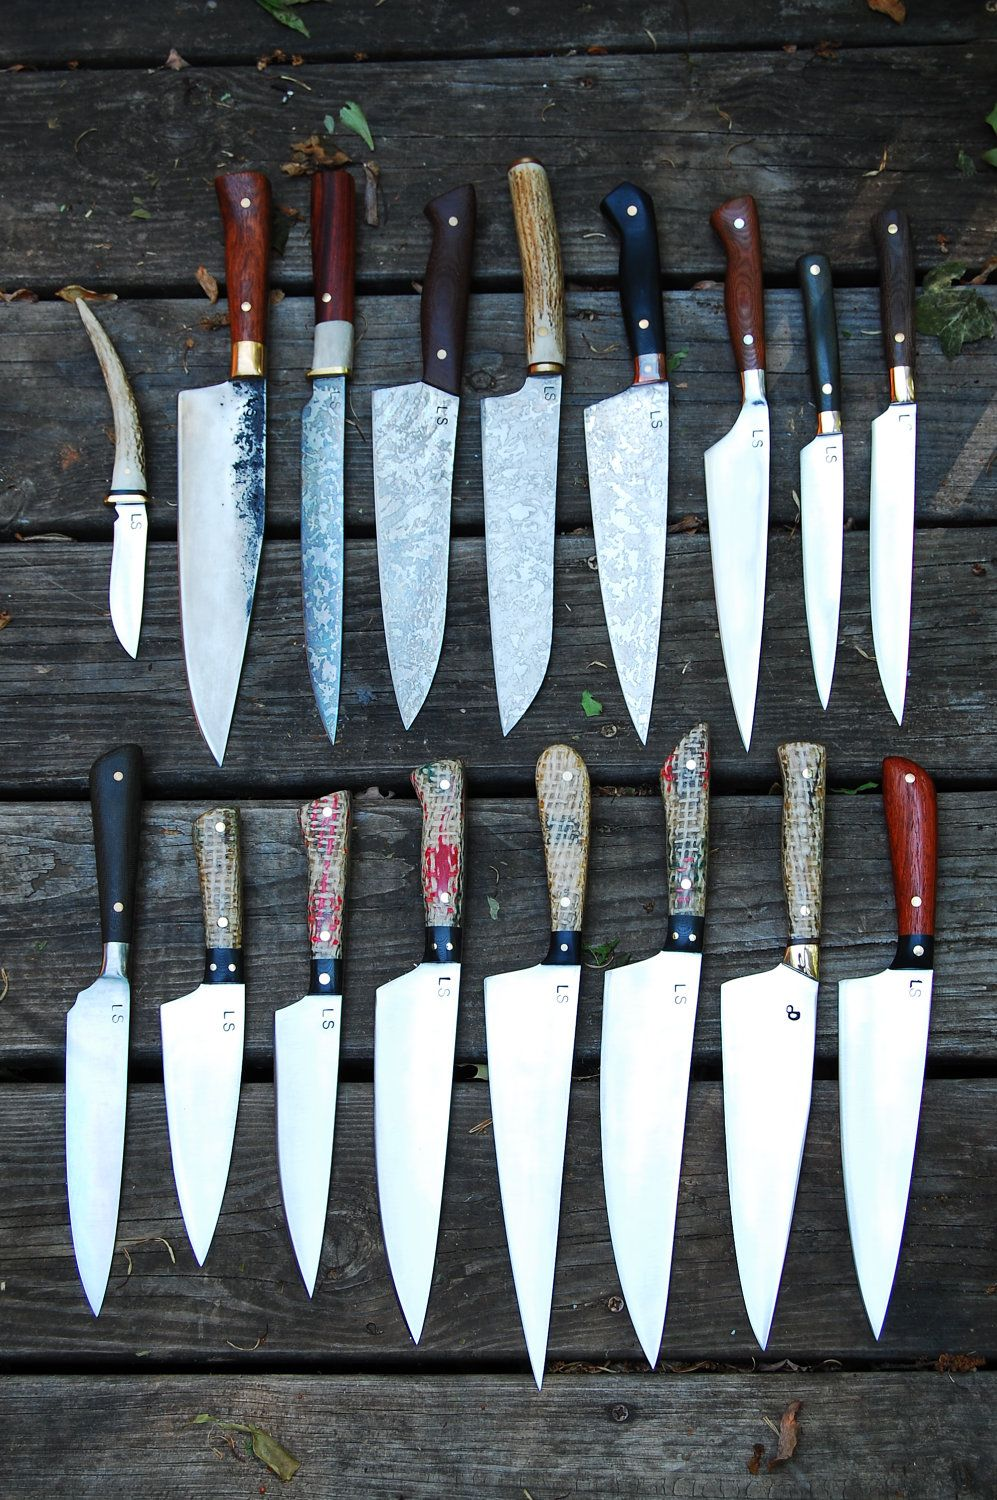 Custom Carbon Steel Chef Knives Yes Please Kitchen